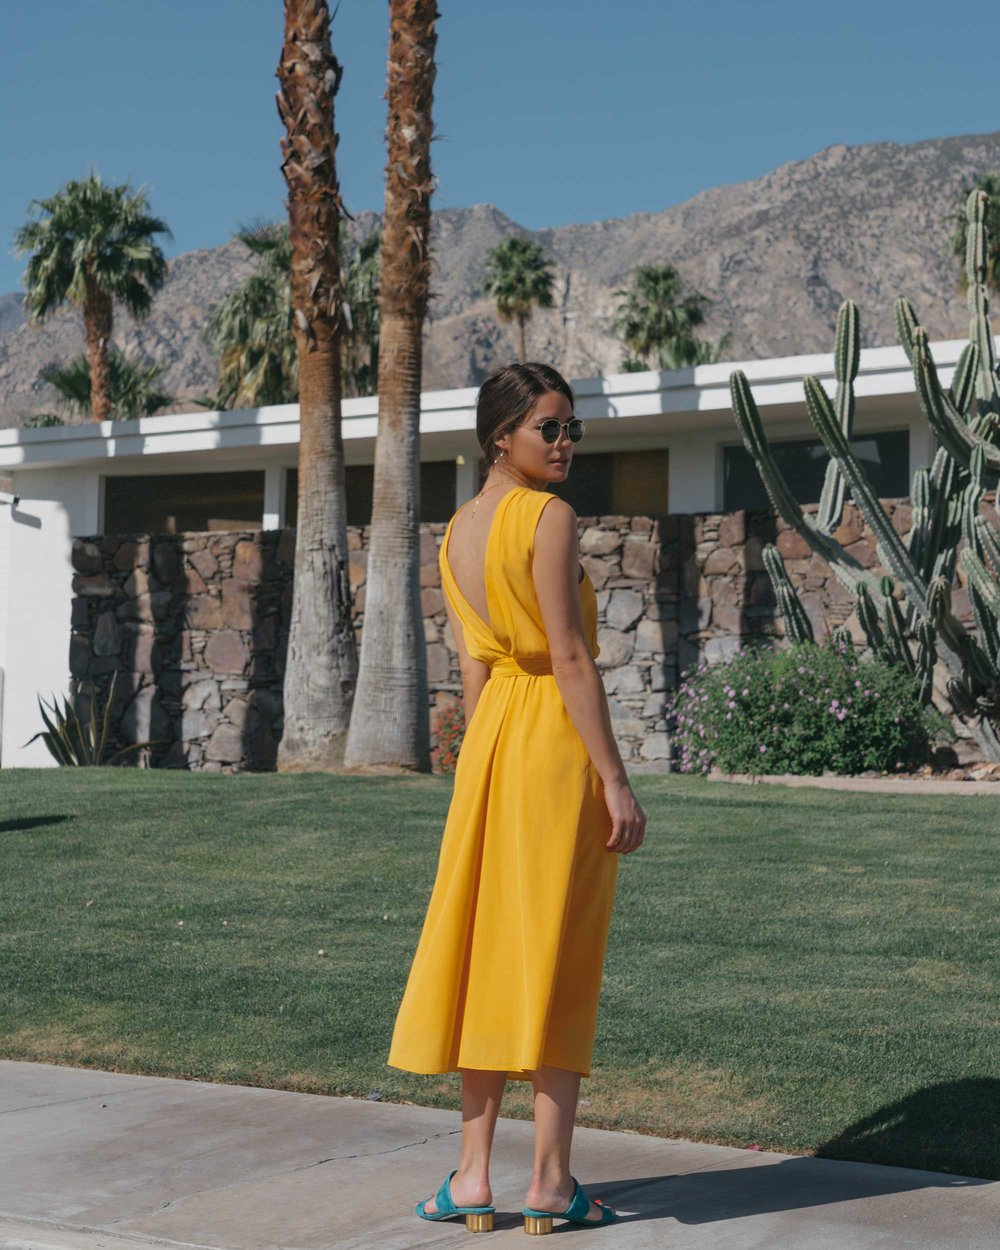 Feminine Yellow Cross Front Midi Dress Palm Springs Outfit11.jpg